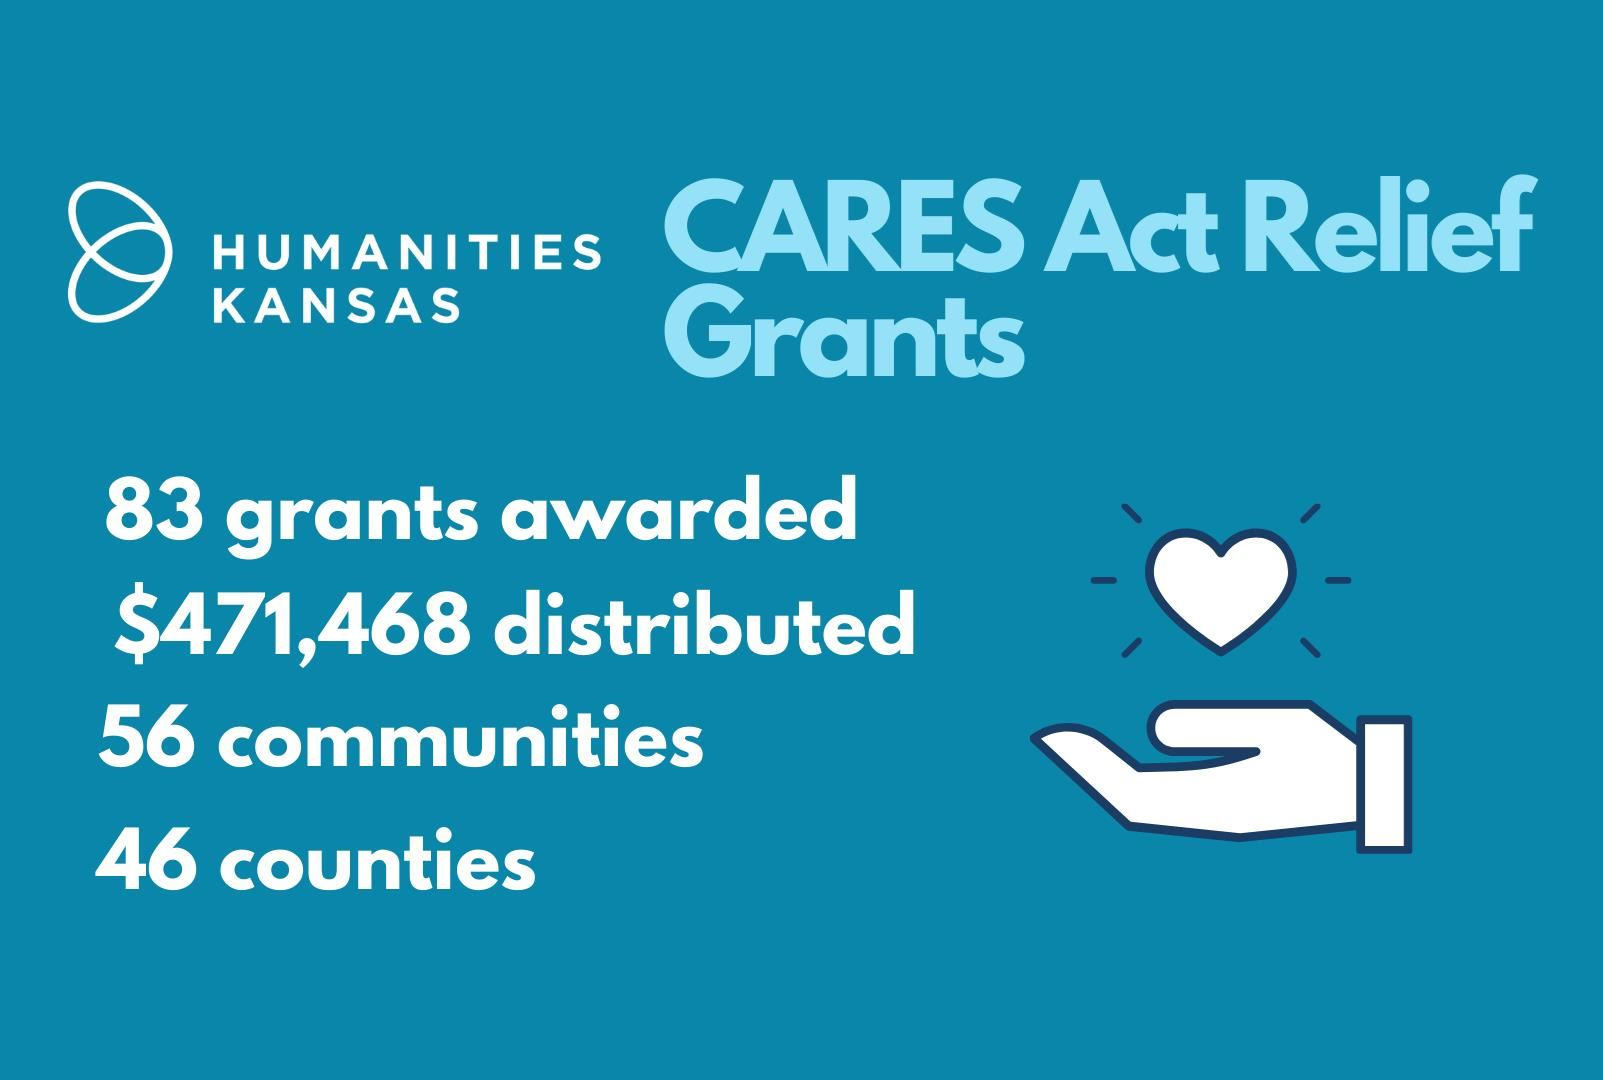 Humanities Kansas CARES Act Relief Grants Infographic. 83 grants awarded, $471,468 distributed, 56 communities, 46 counties. Graphic image of an outstretched hand with a heart above it.